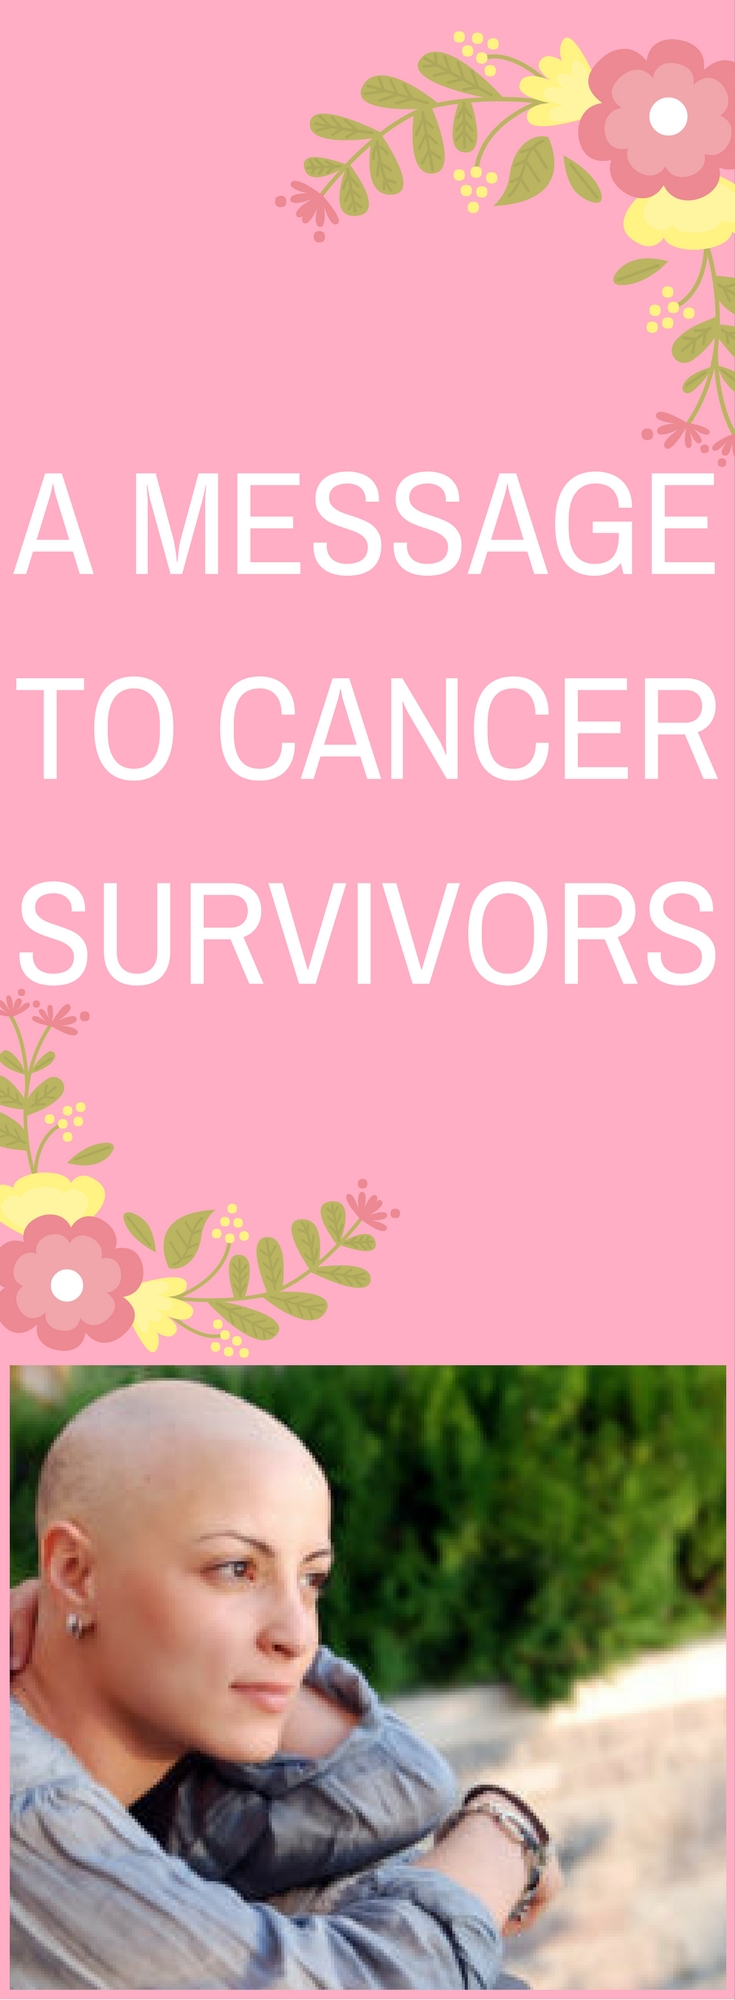 A Message to Cancer Survivors | Cancer Story | Stories of Hope | Breast Cancer